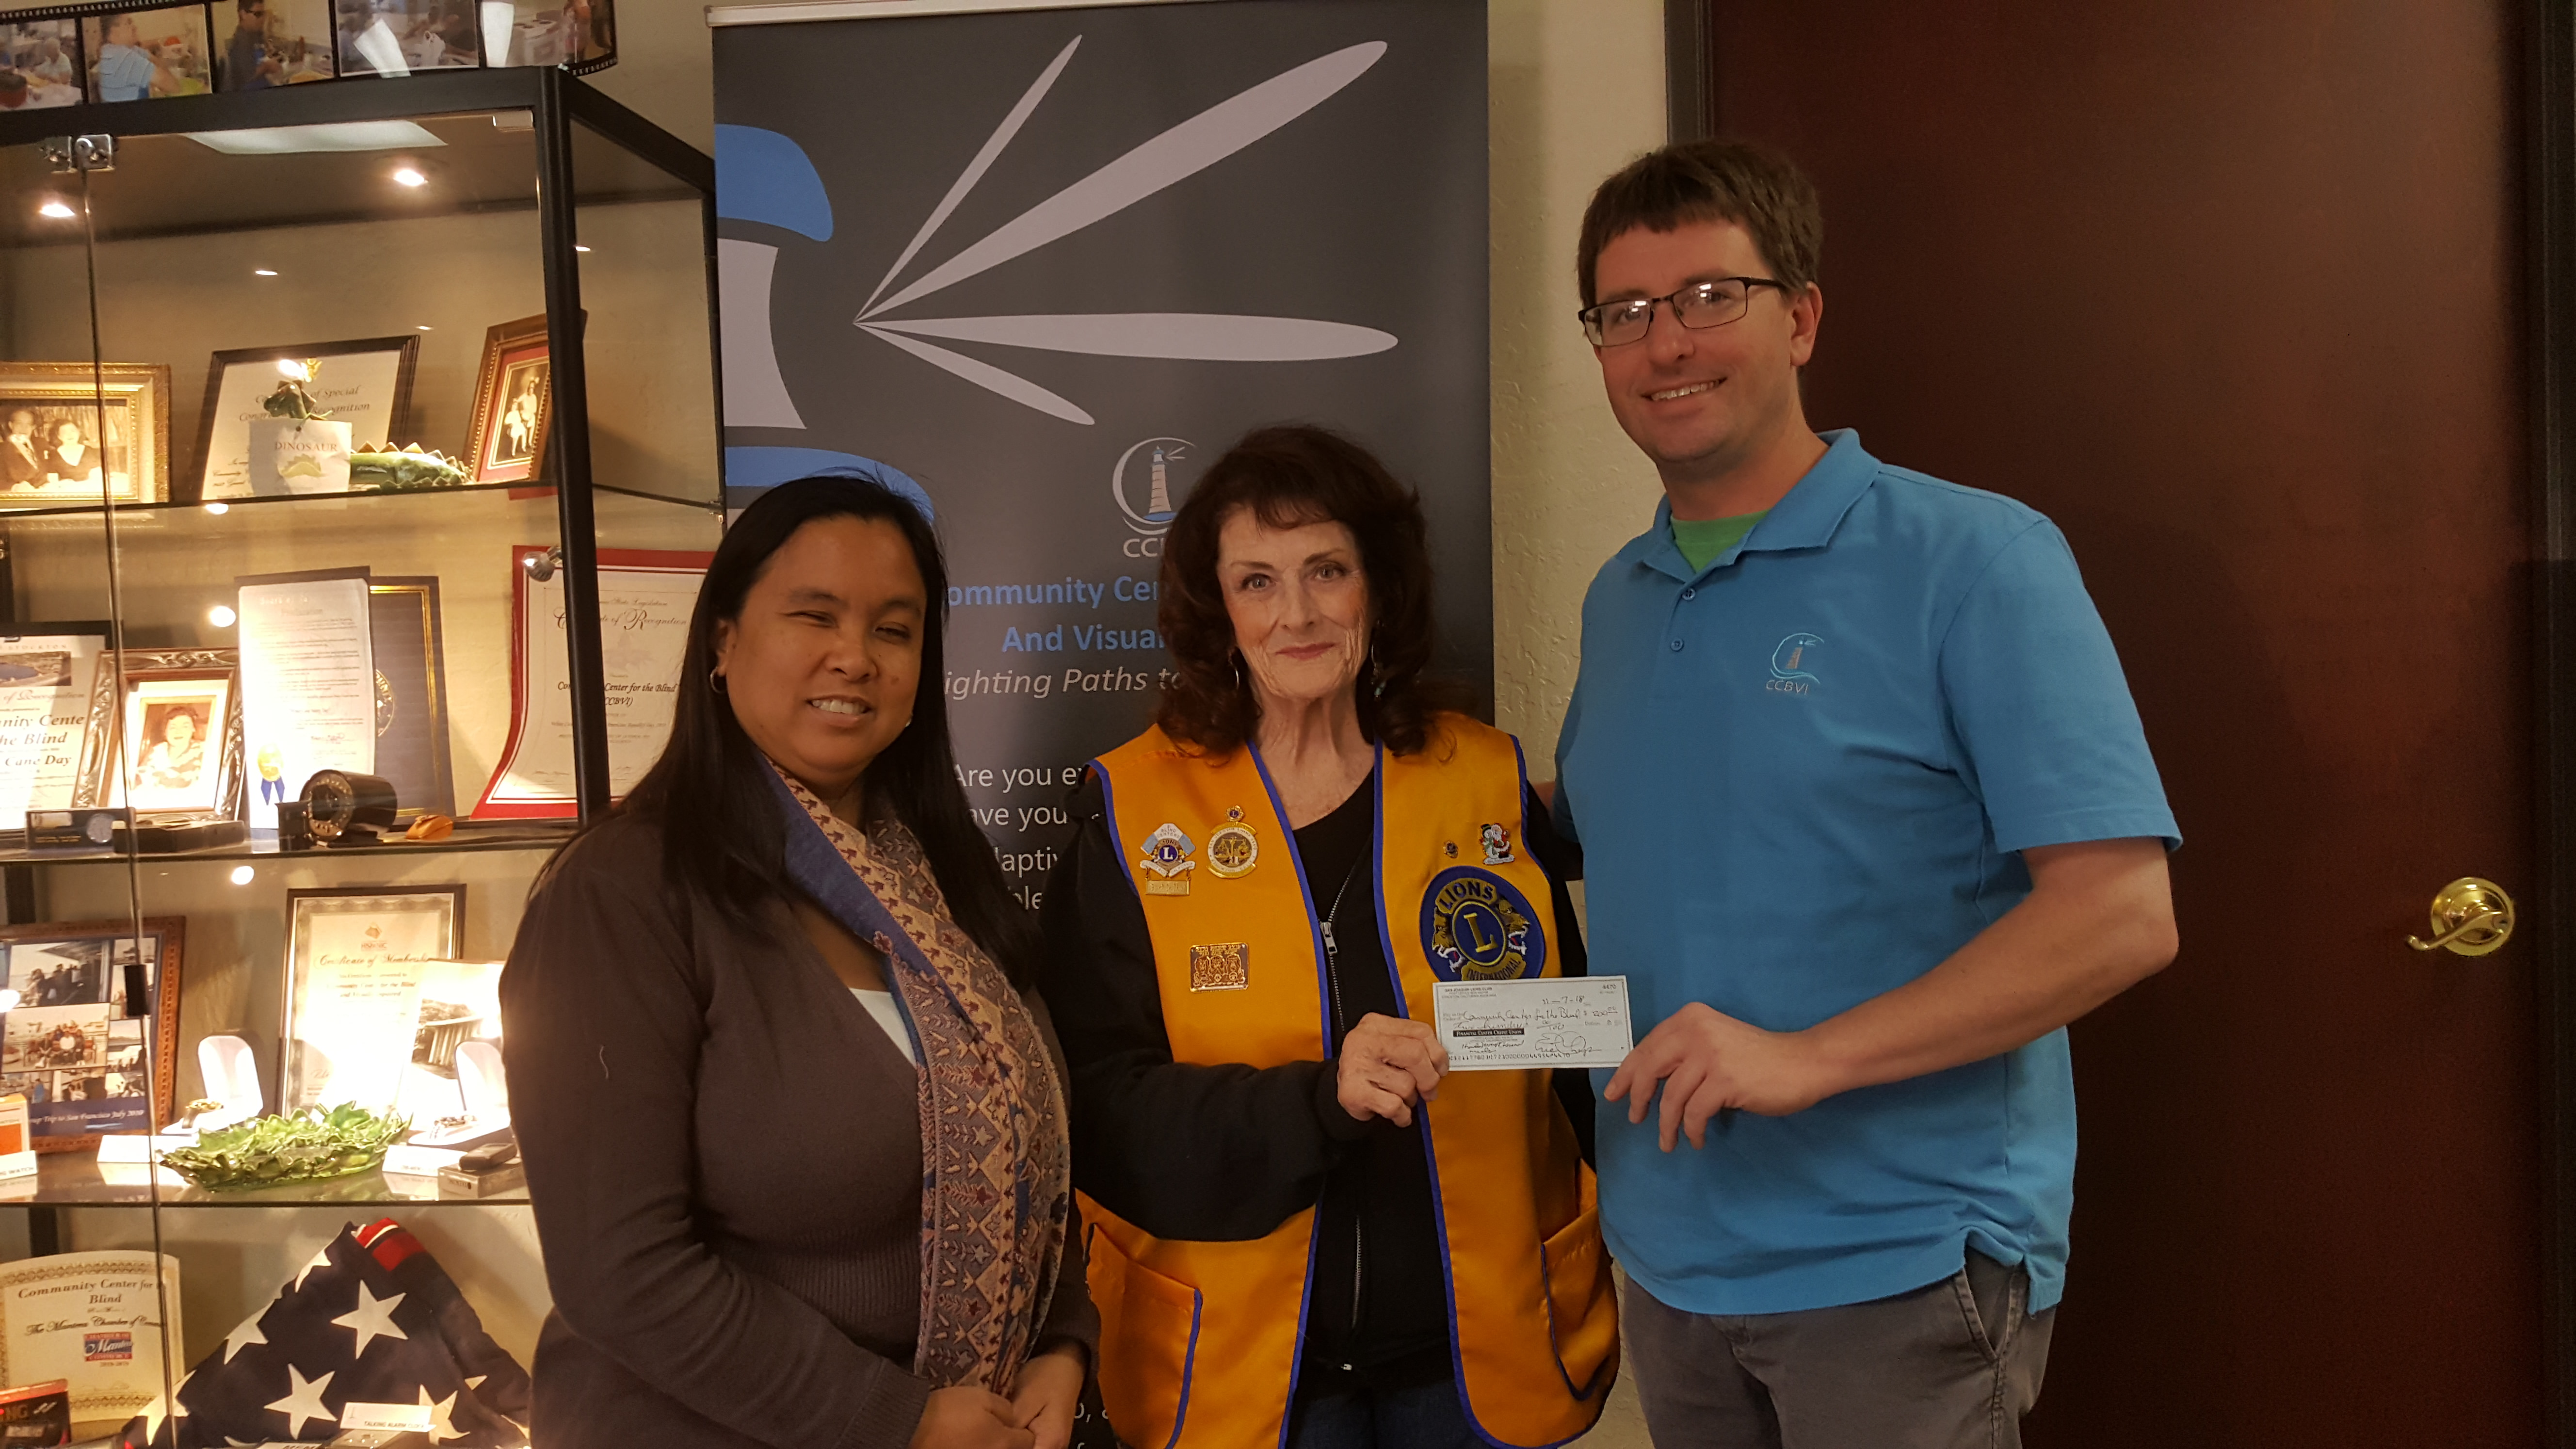 Lions Club making a donation to CCBVI